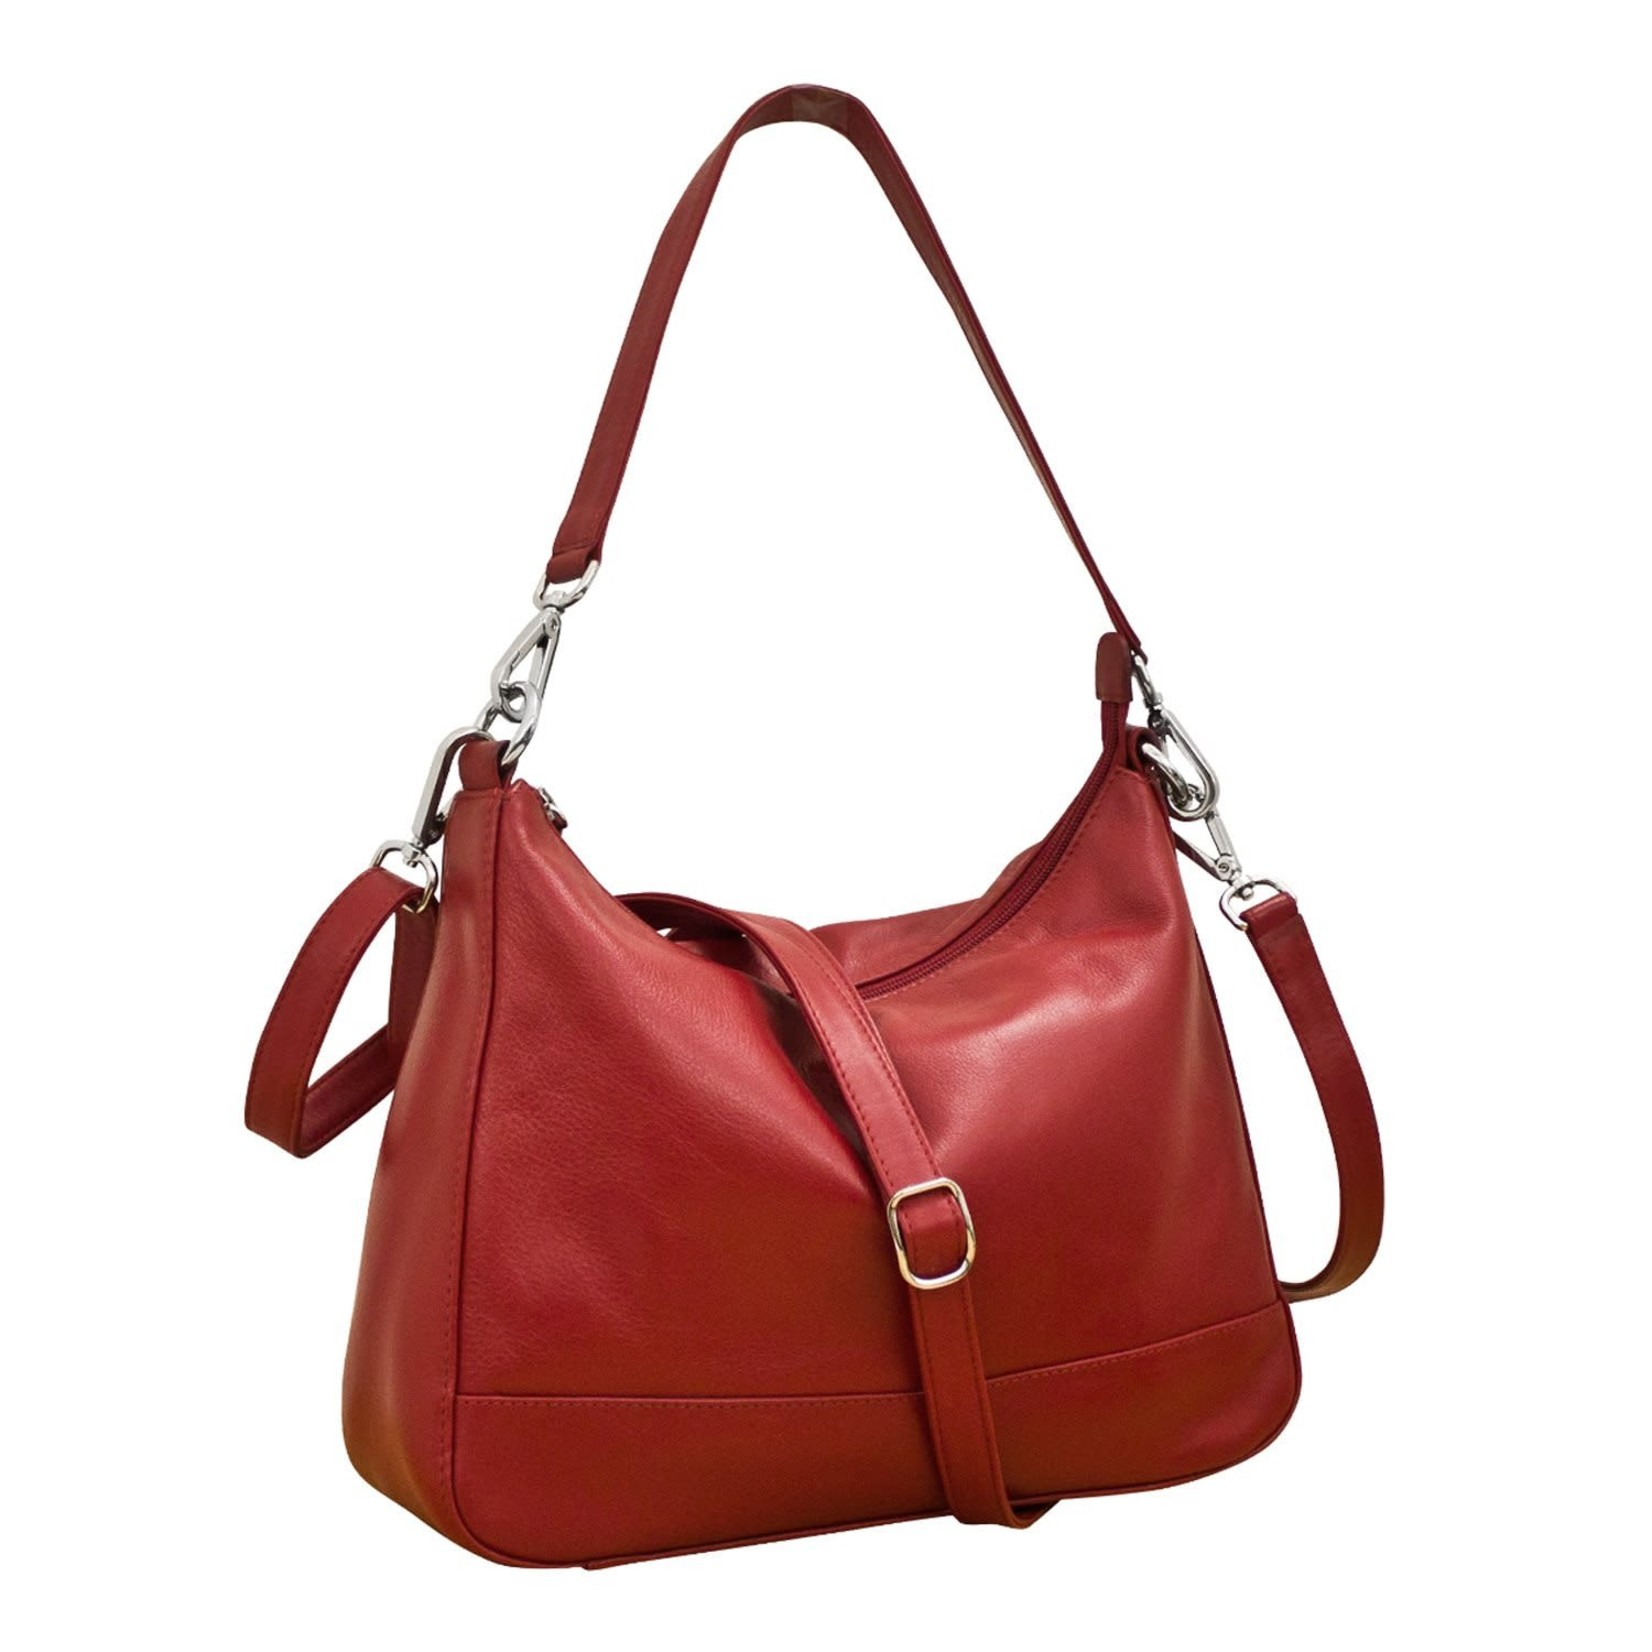 Leather Handbags and Accessories 6091 Red - Zip Top Hobo